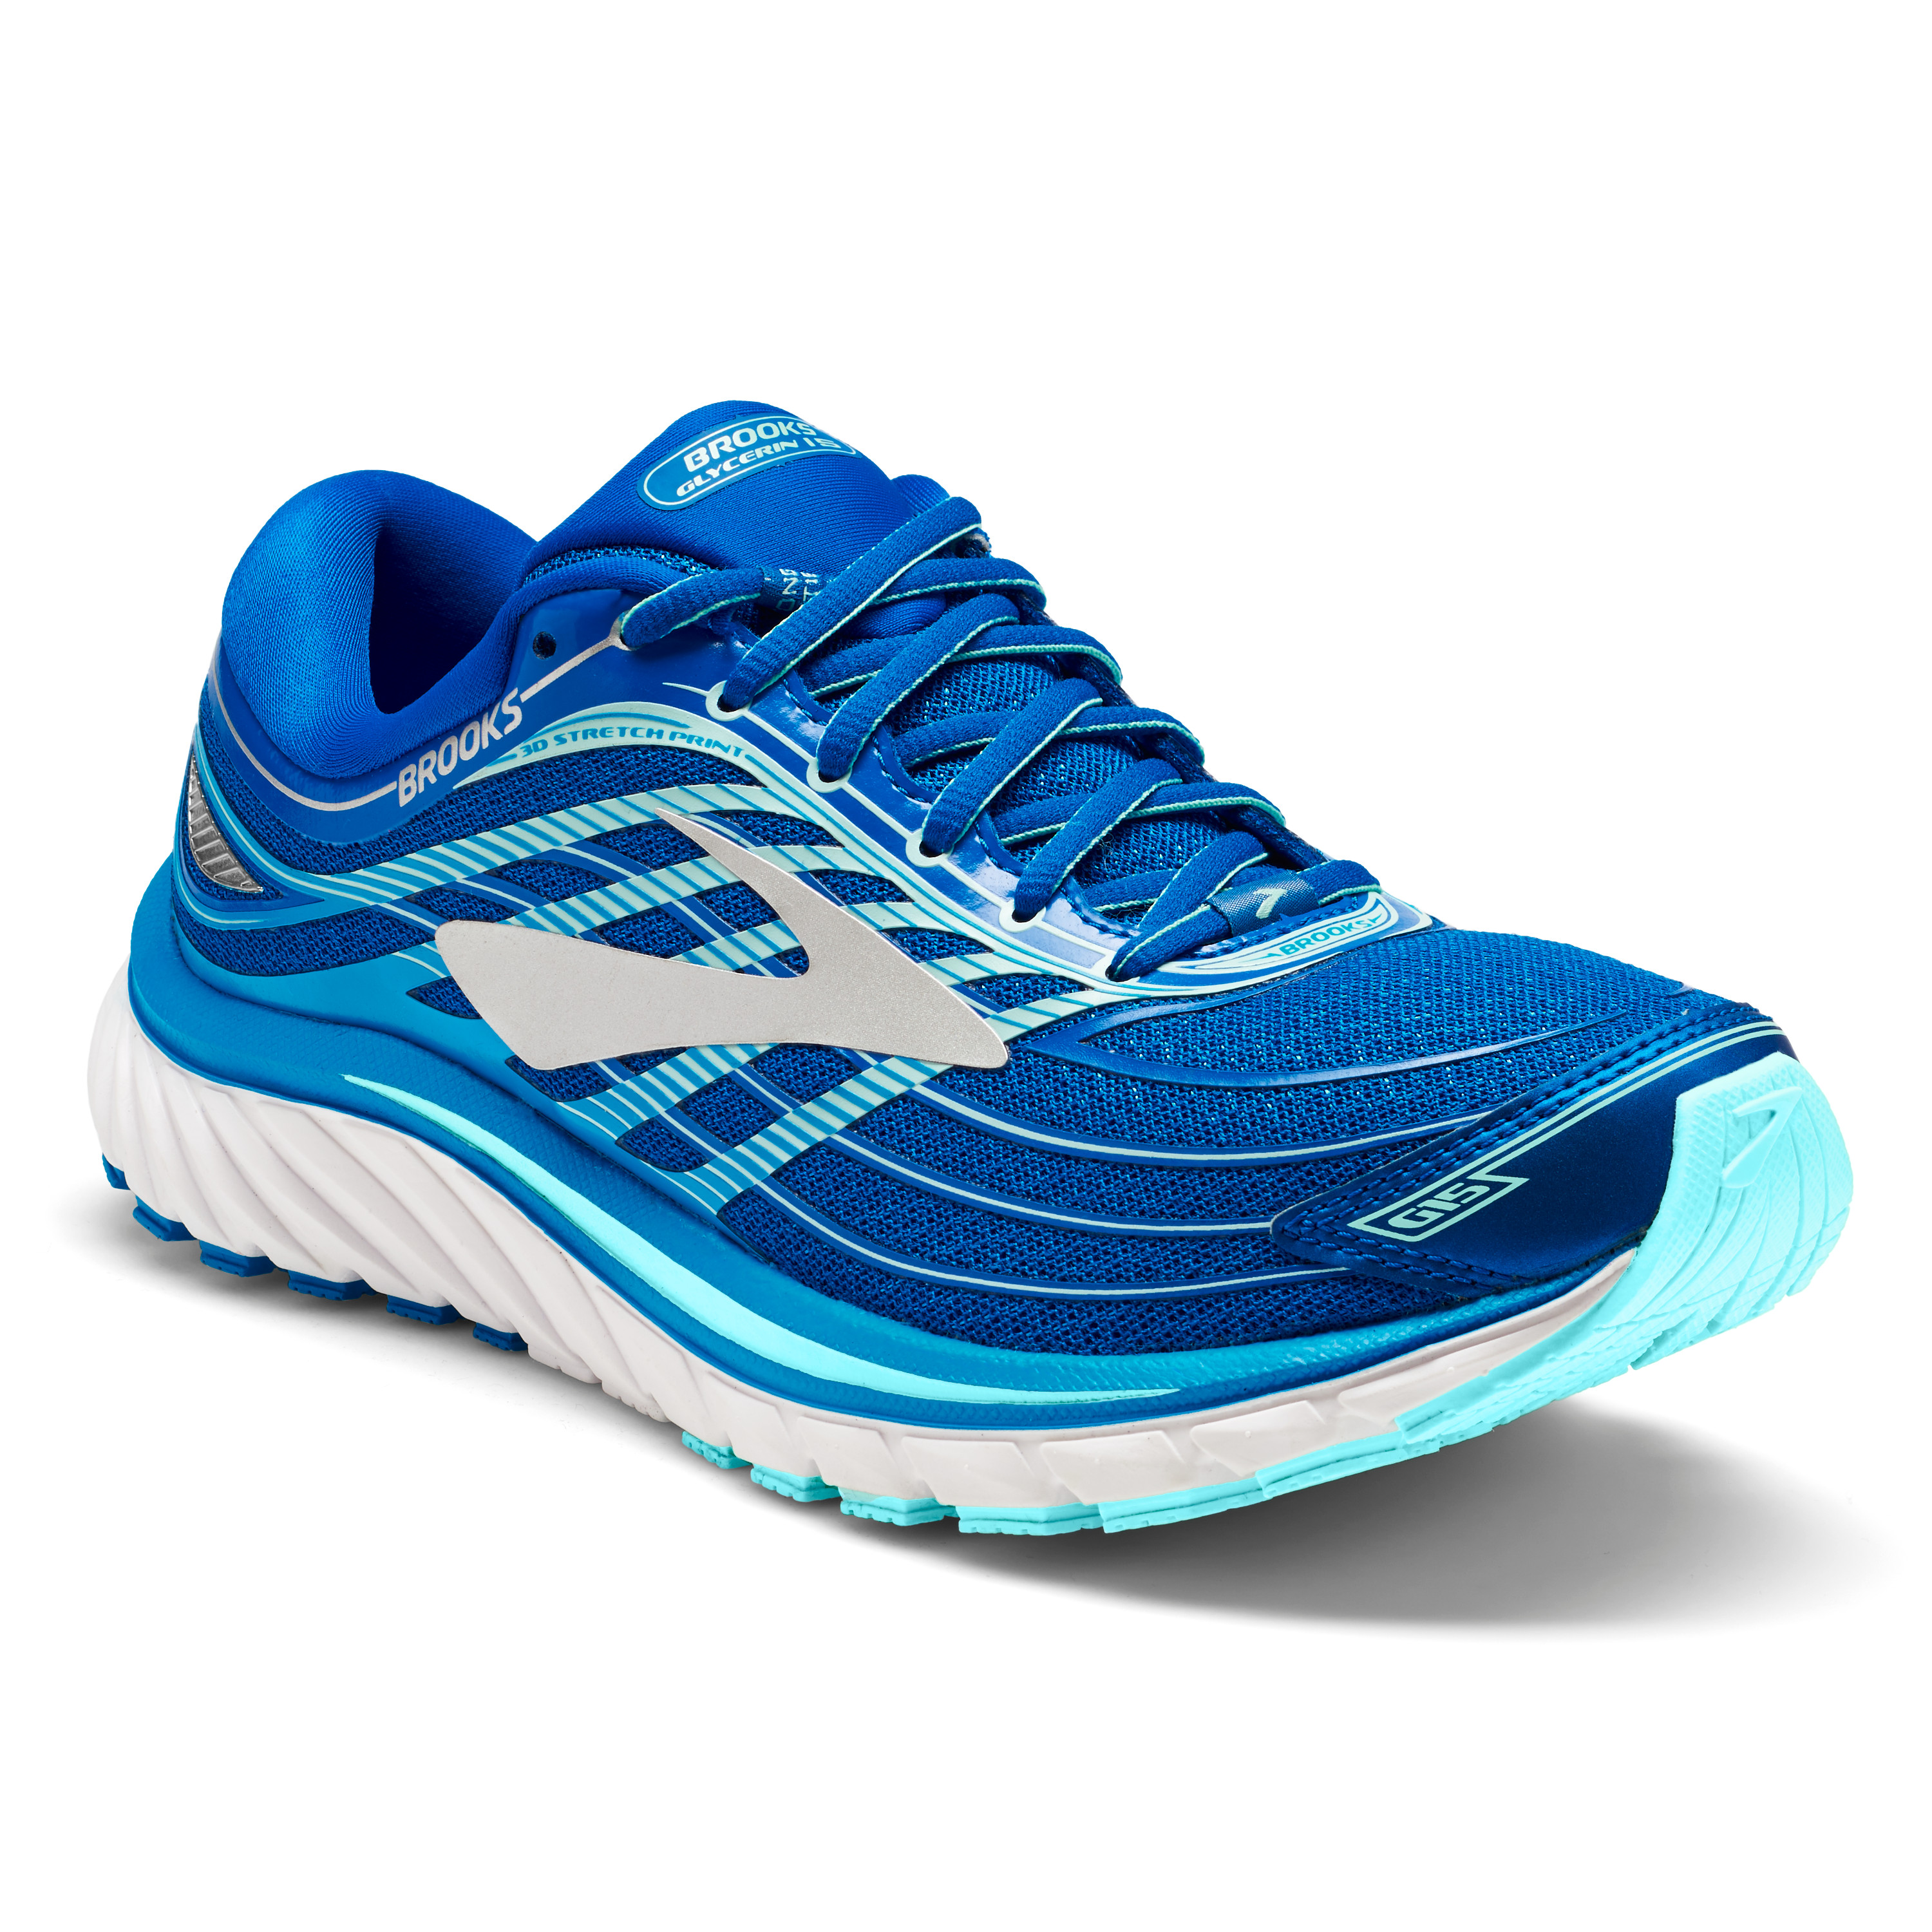 63c6bdbaade WOMEN S GLYCERIN 15 - Brooks Running Shoes SA